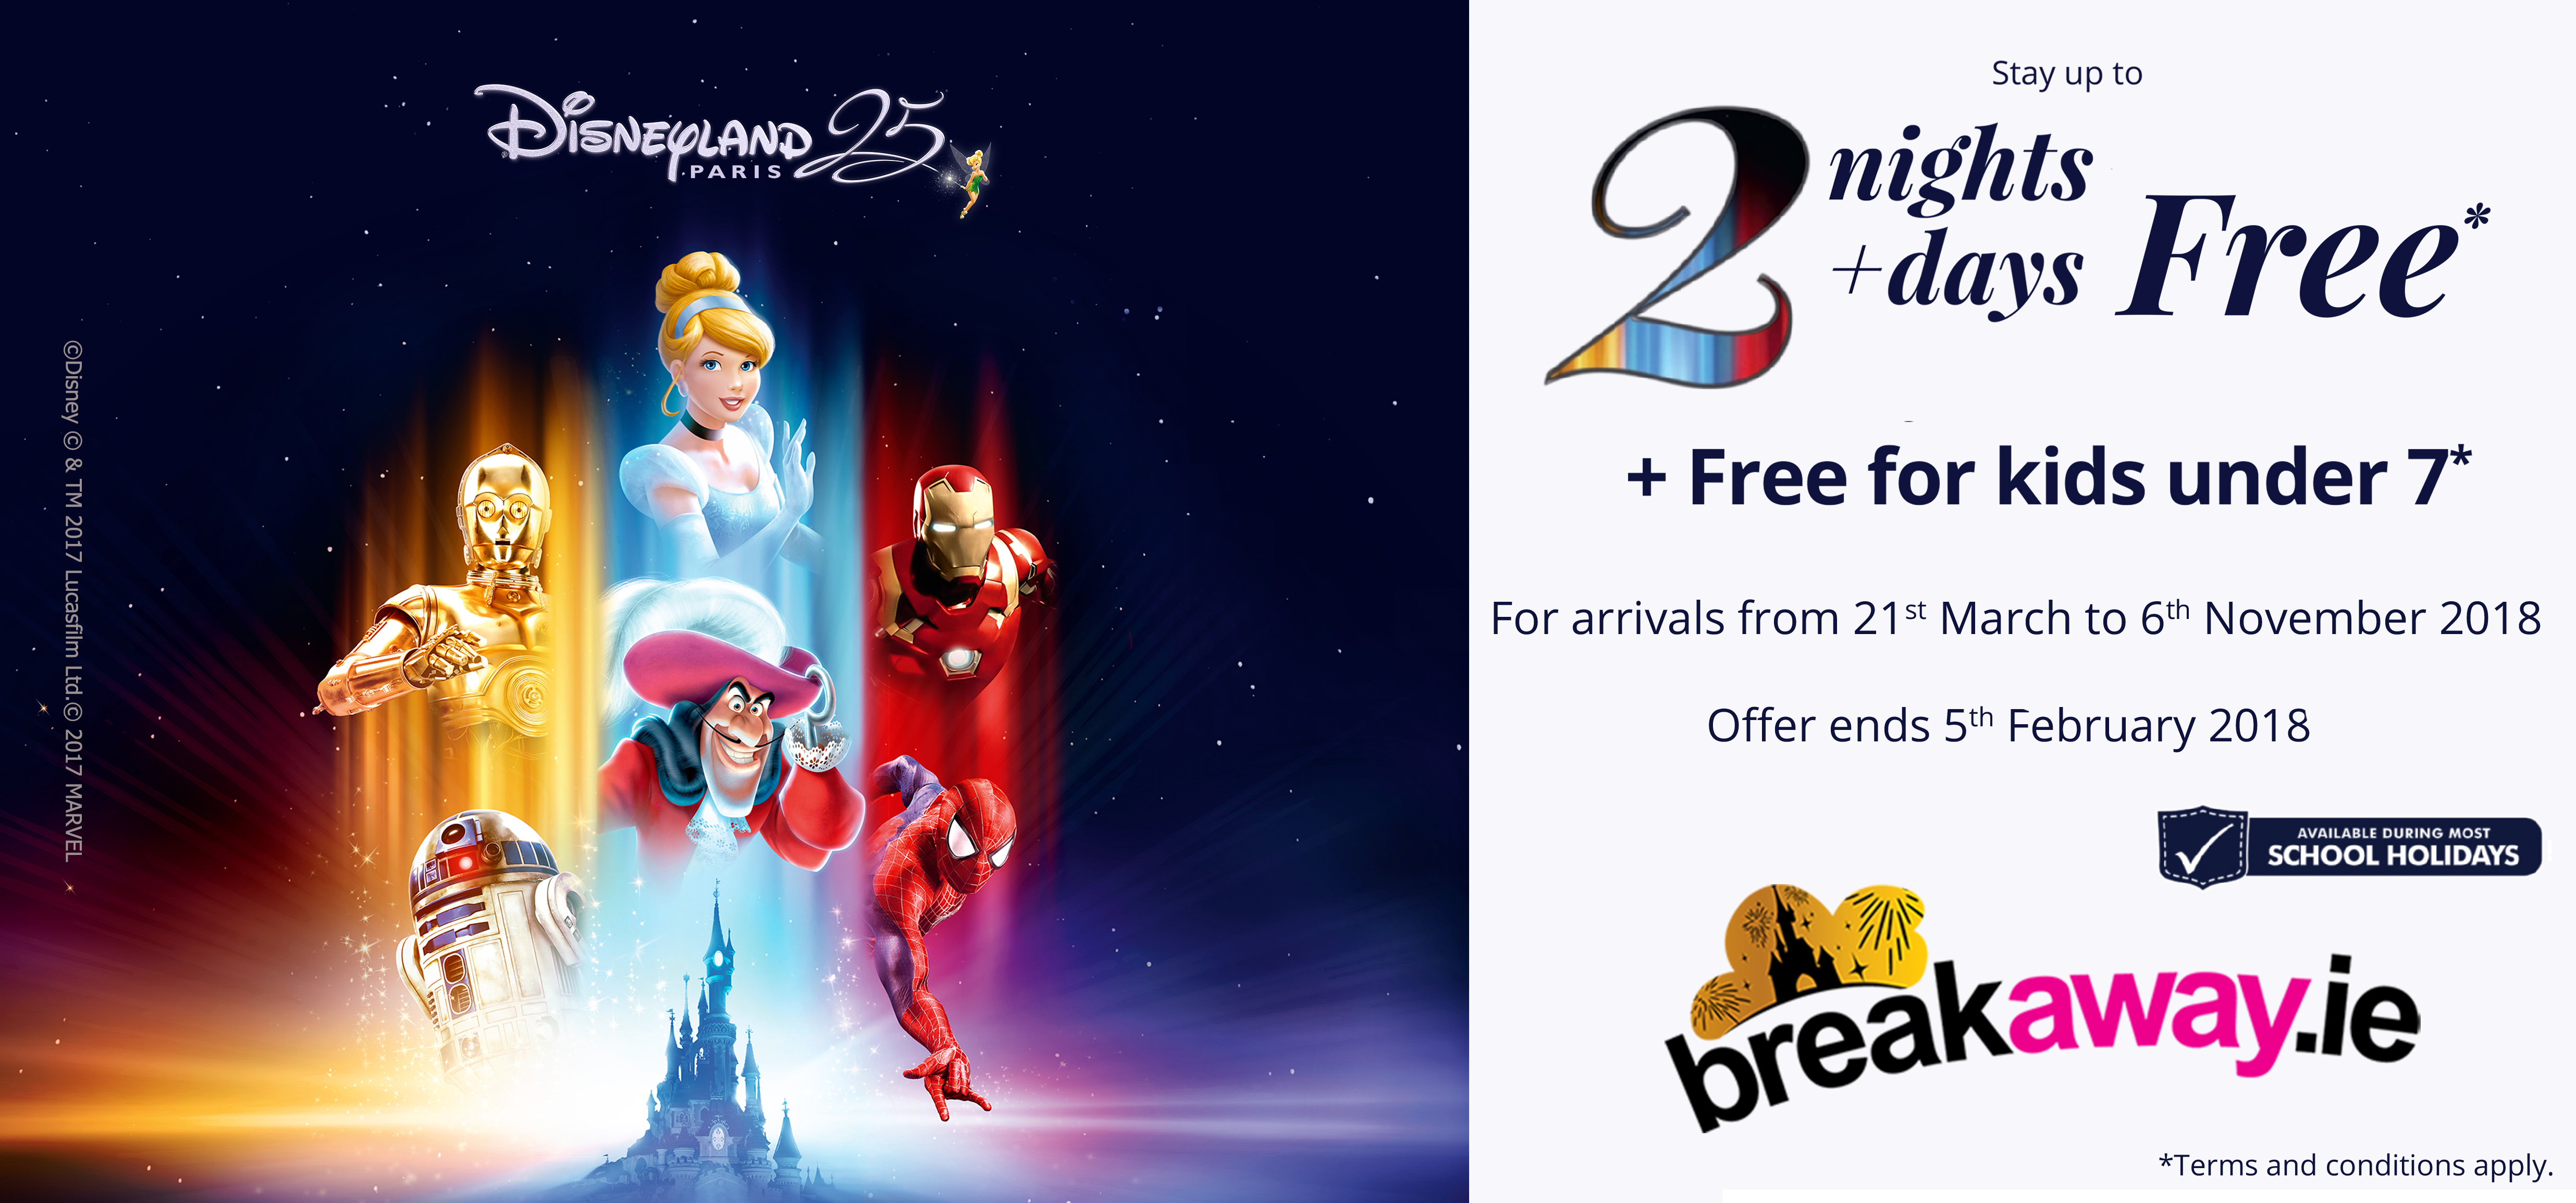 Save 25% on your trip to Disneyland Paris